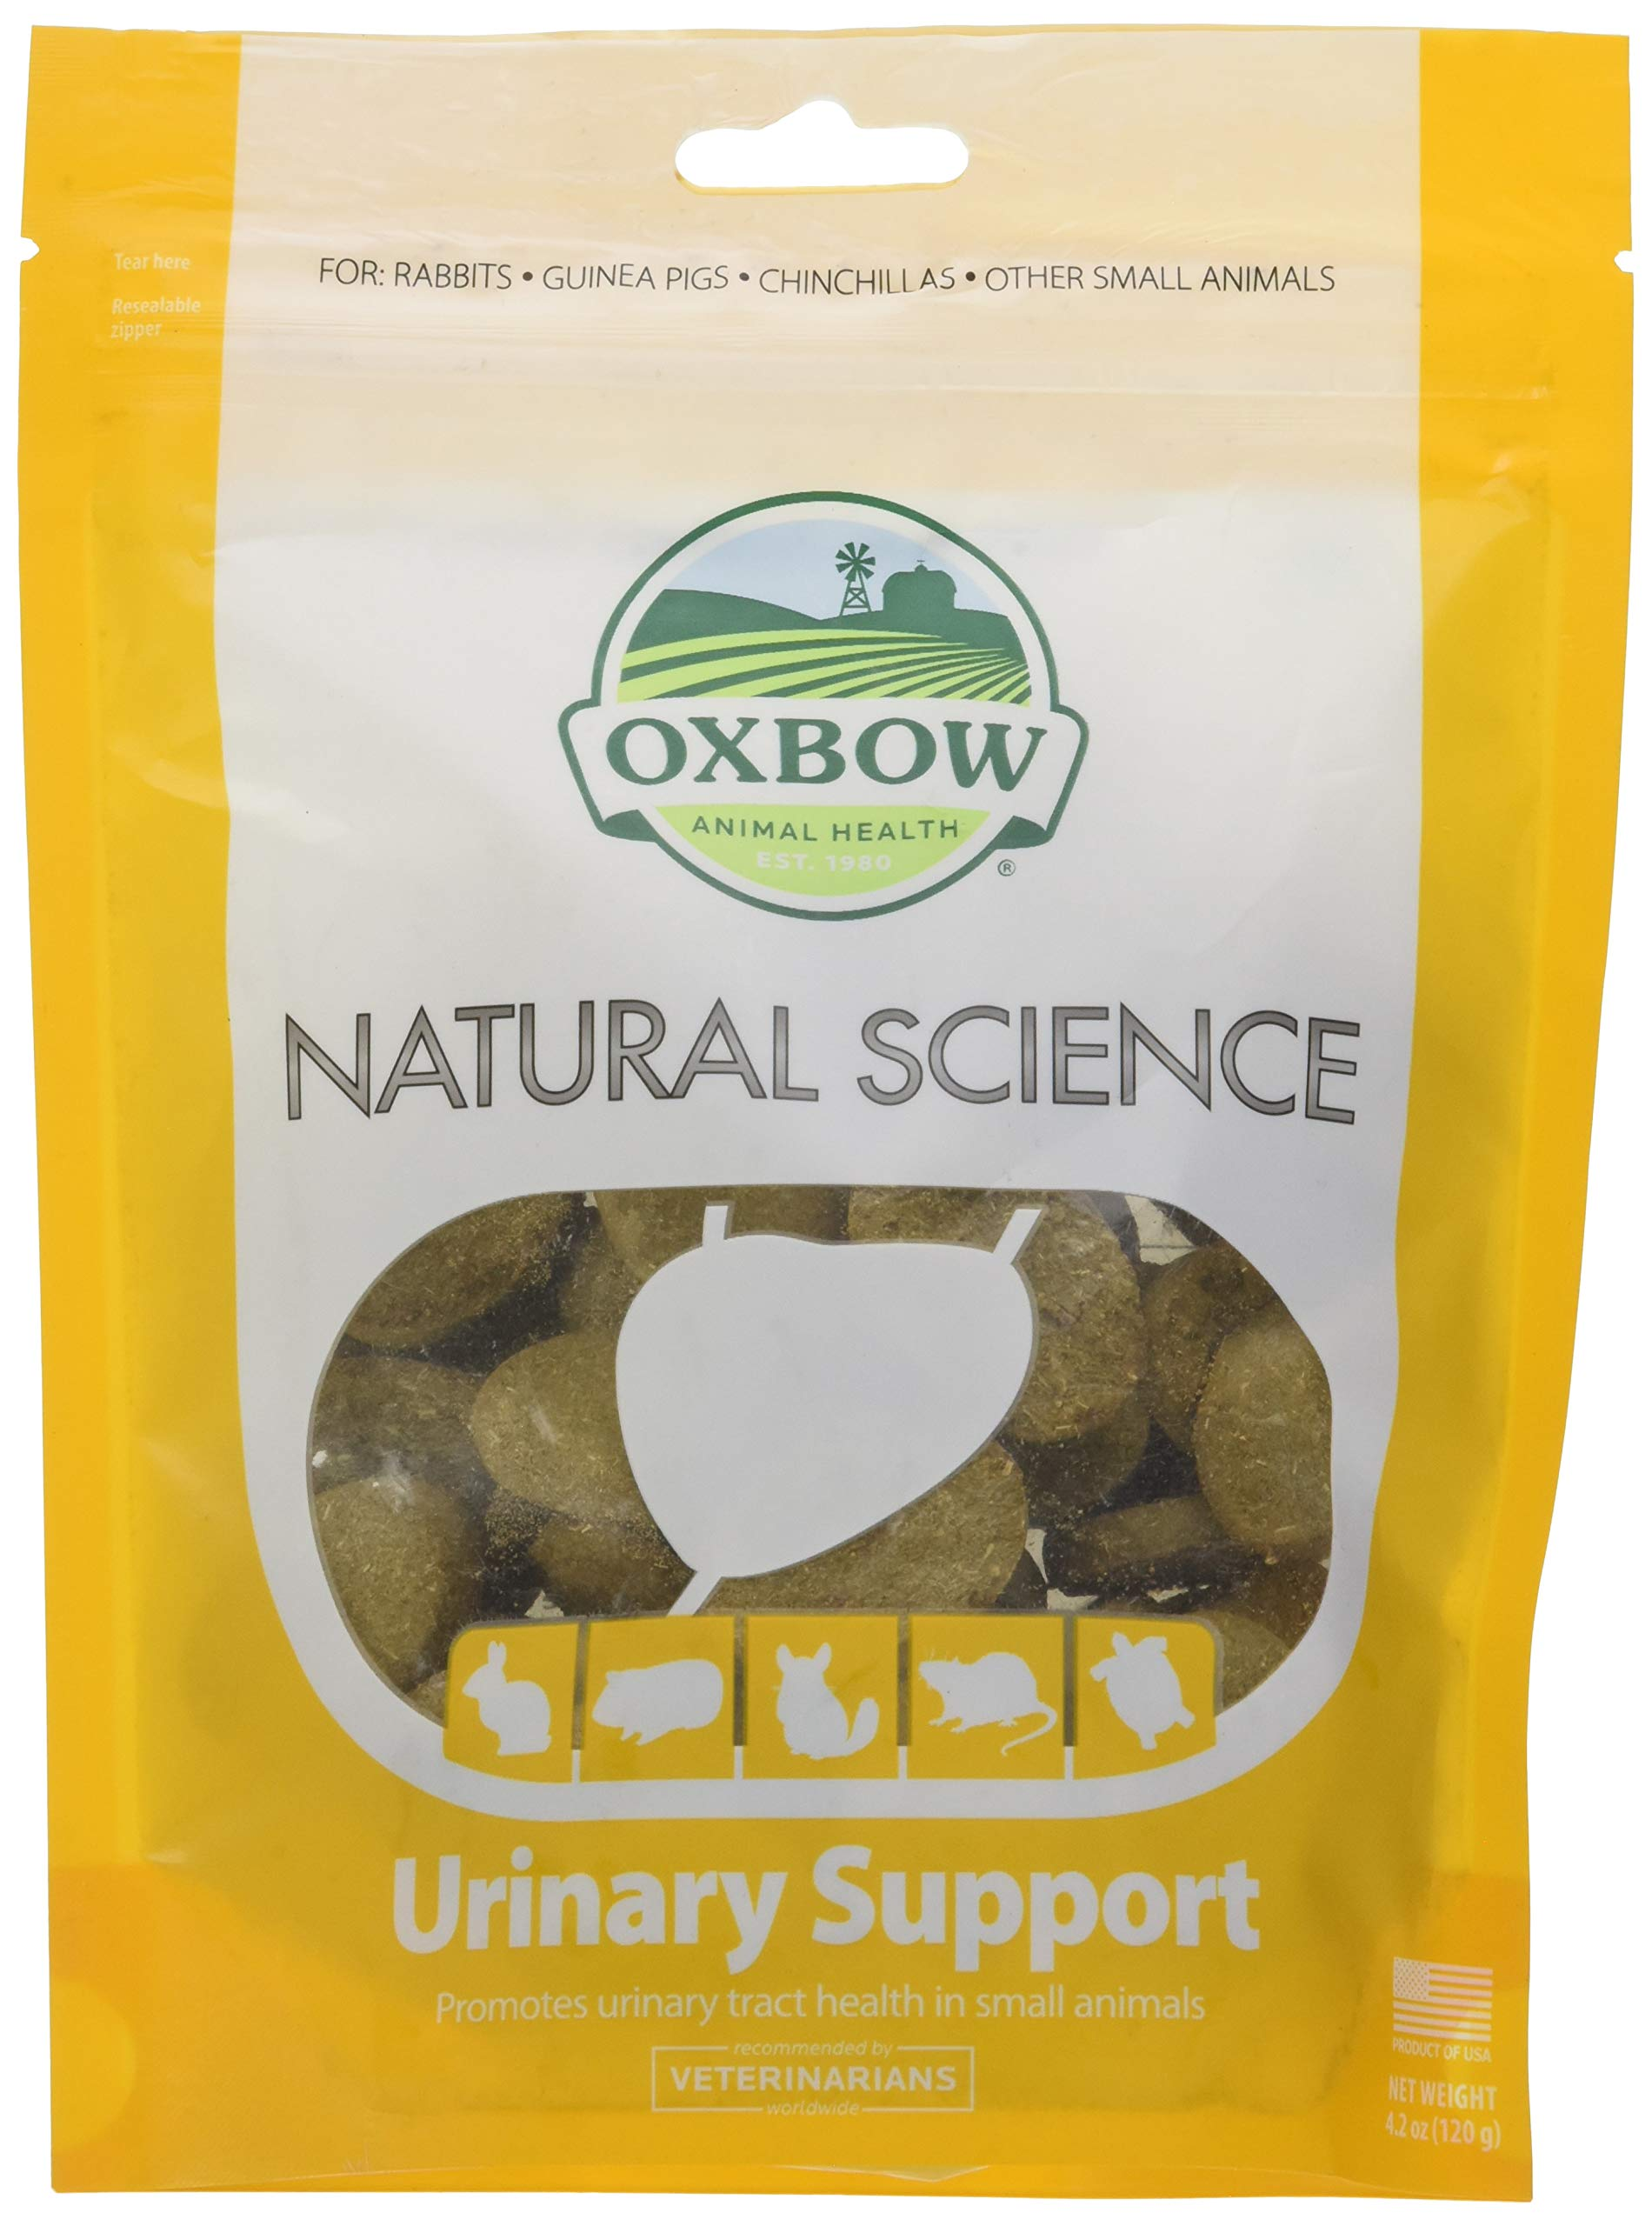 Oxbow Natural Science Urinary Support 4.2 oz